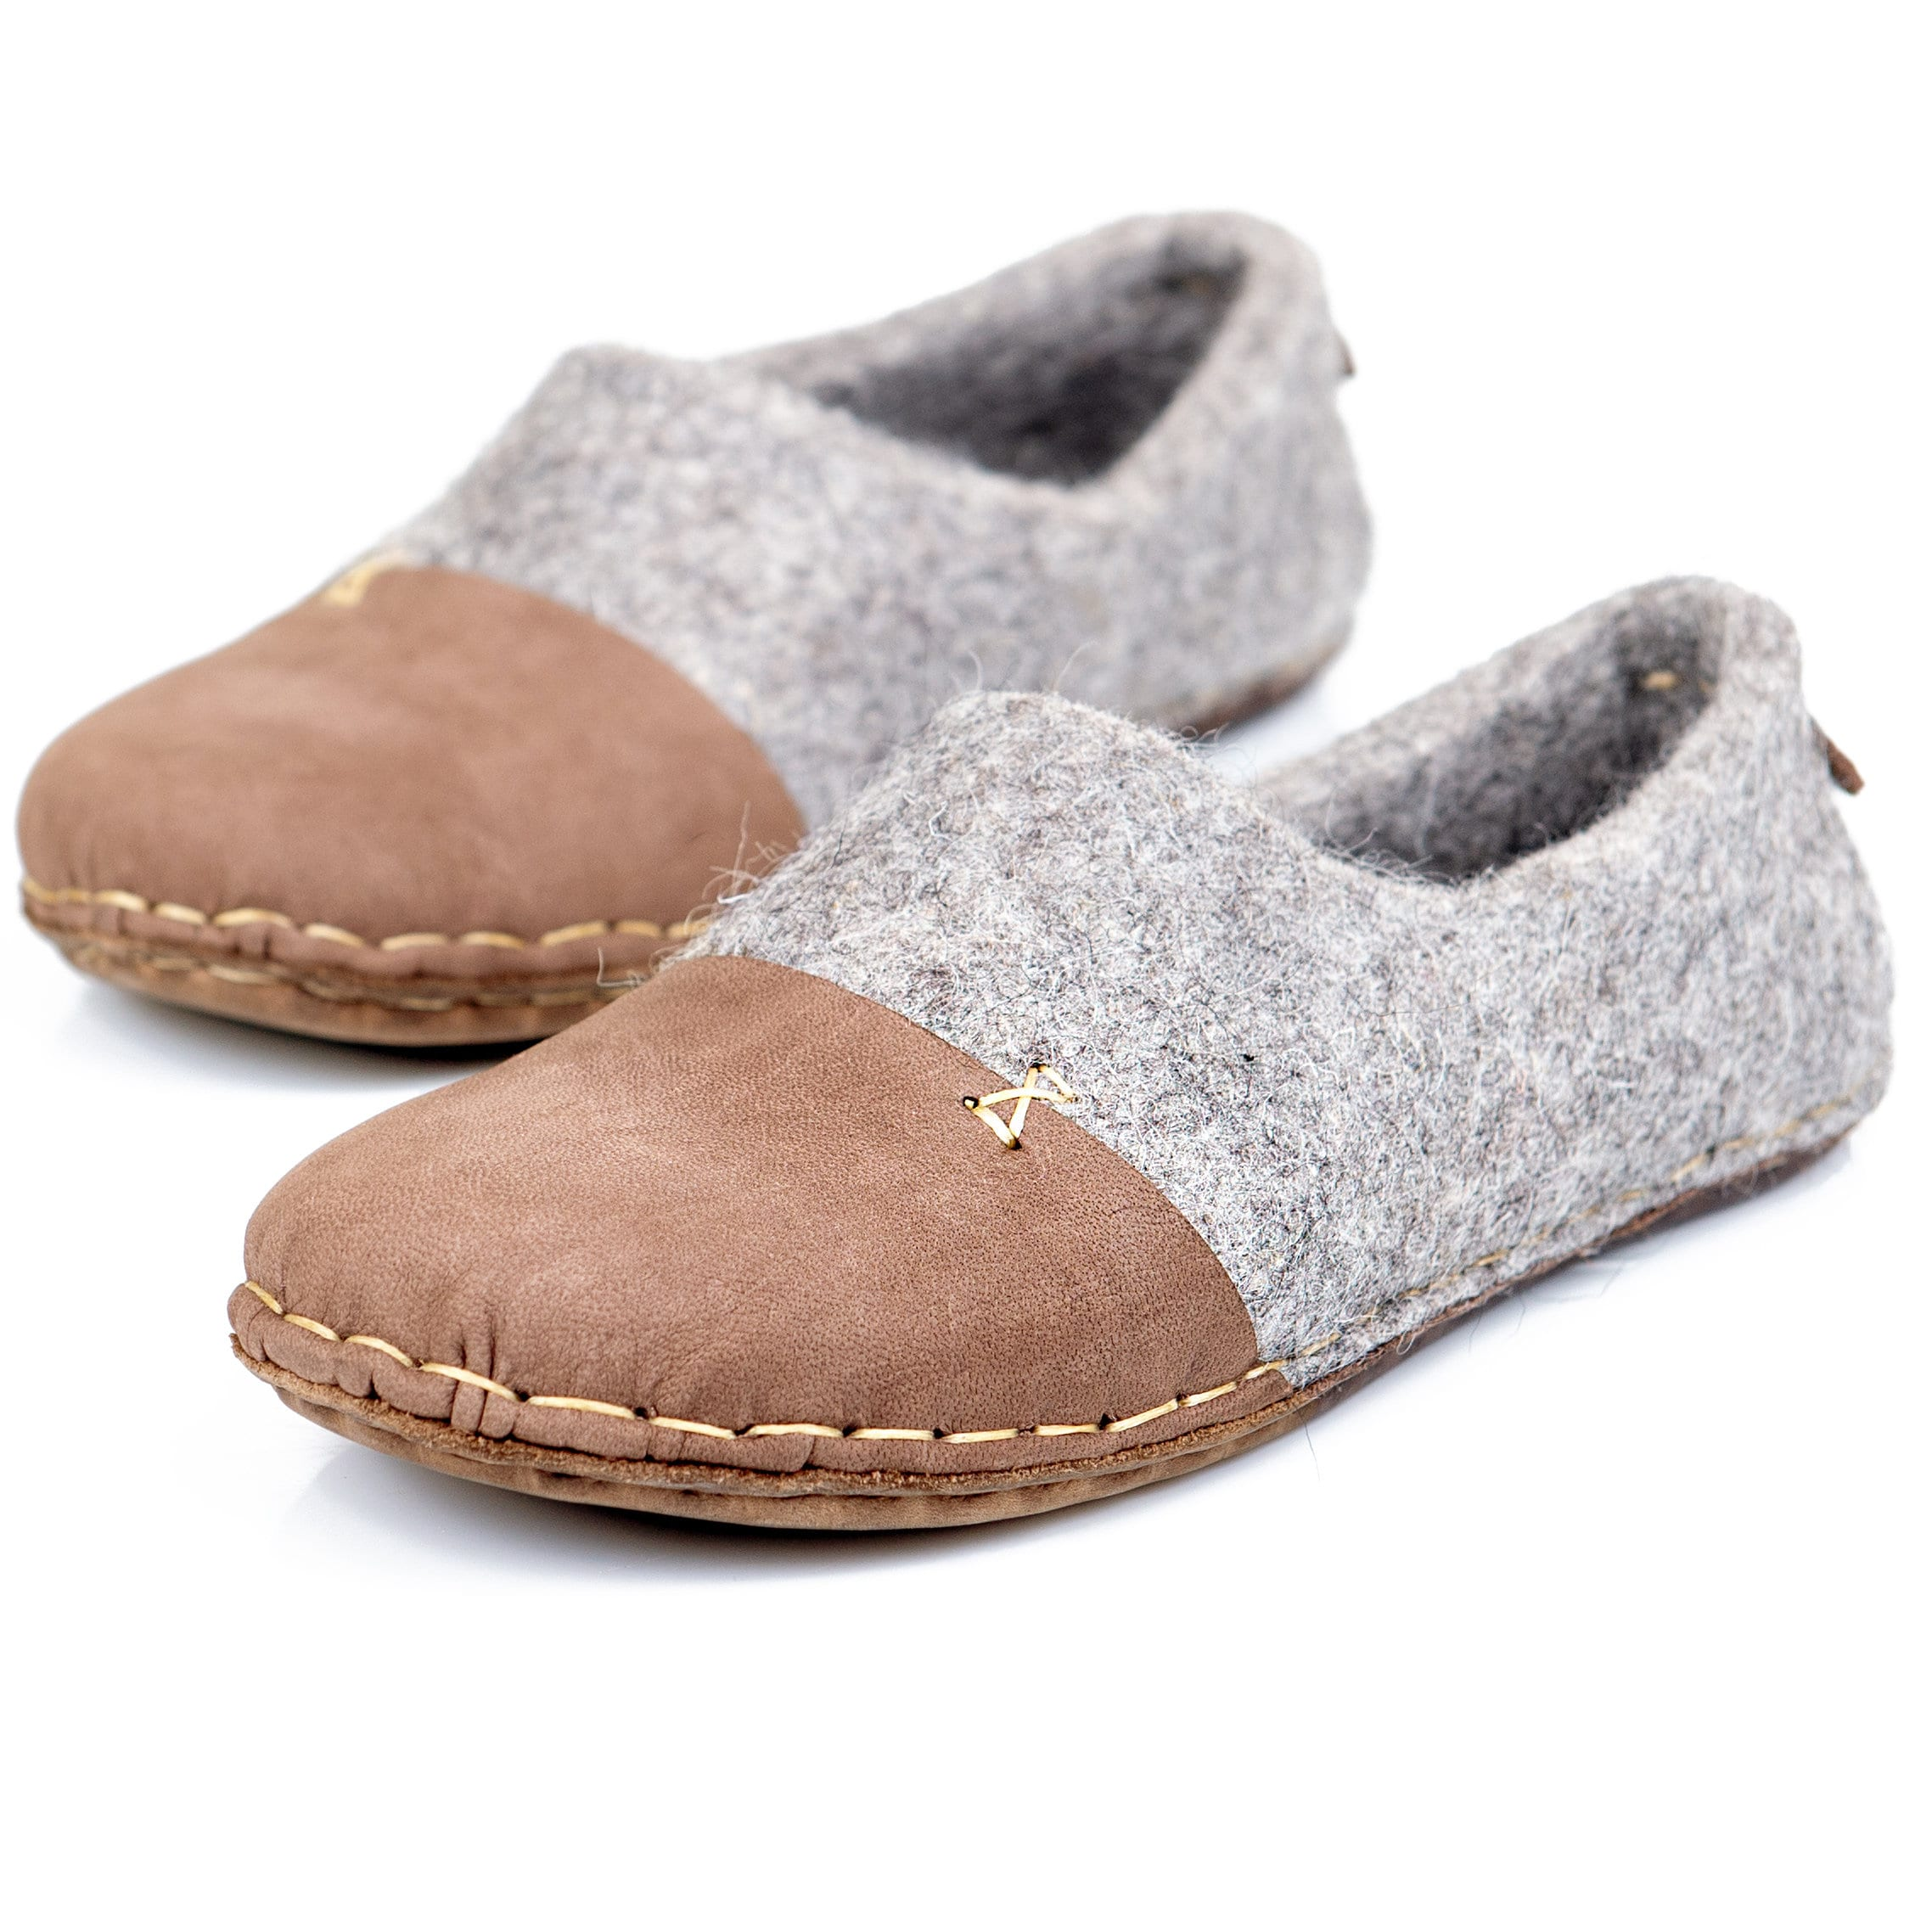 7d625c30c8f7e Rustic felted wool slippers for men with leather toe caps, Handmade in ...